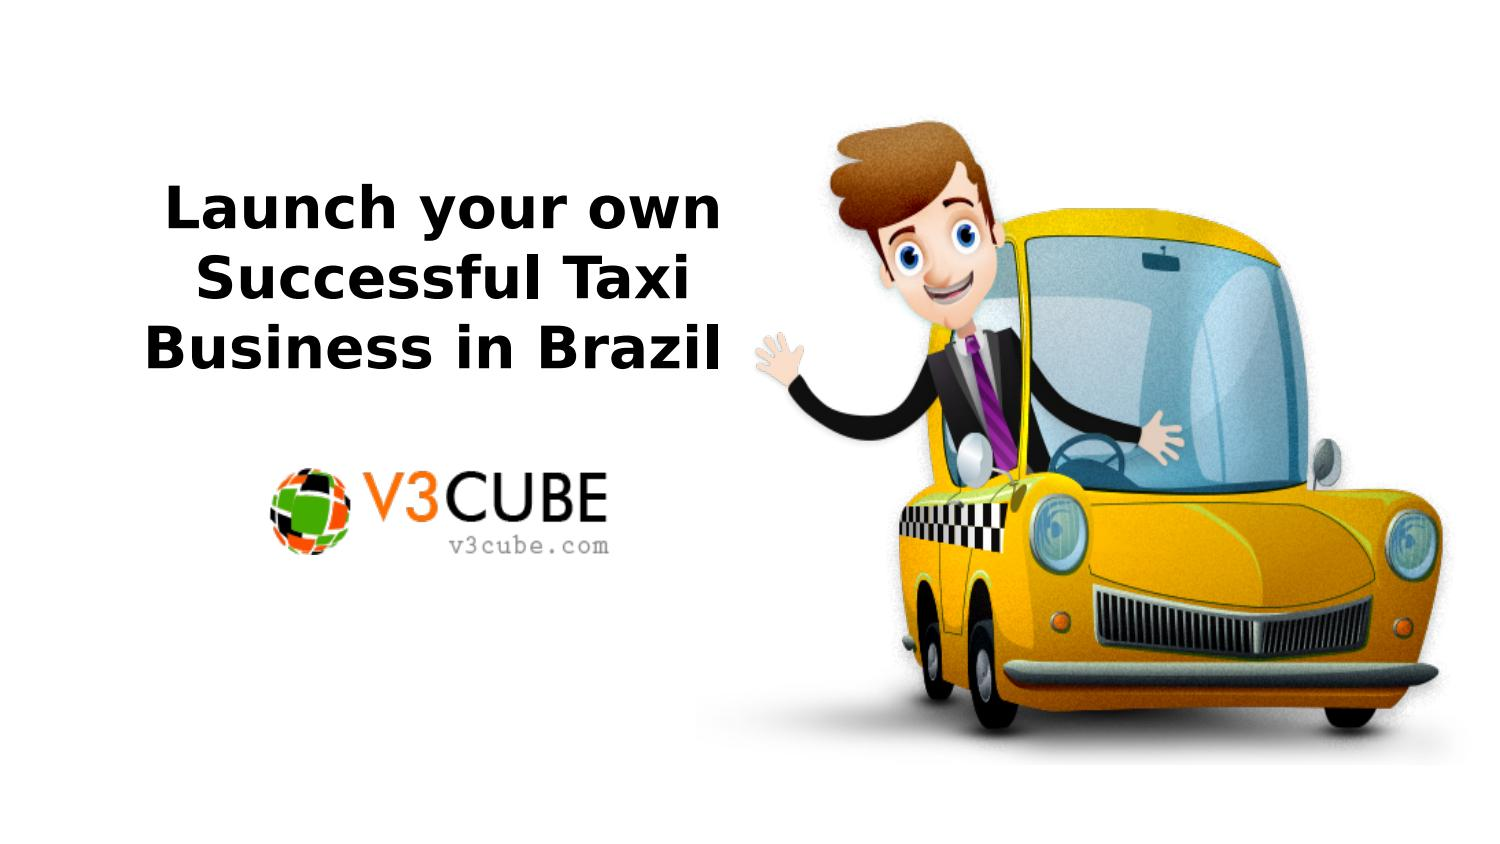 Launch your own Successful Taxi Business in Brazil by V3cube